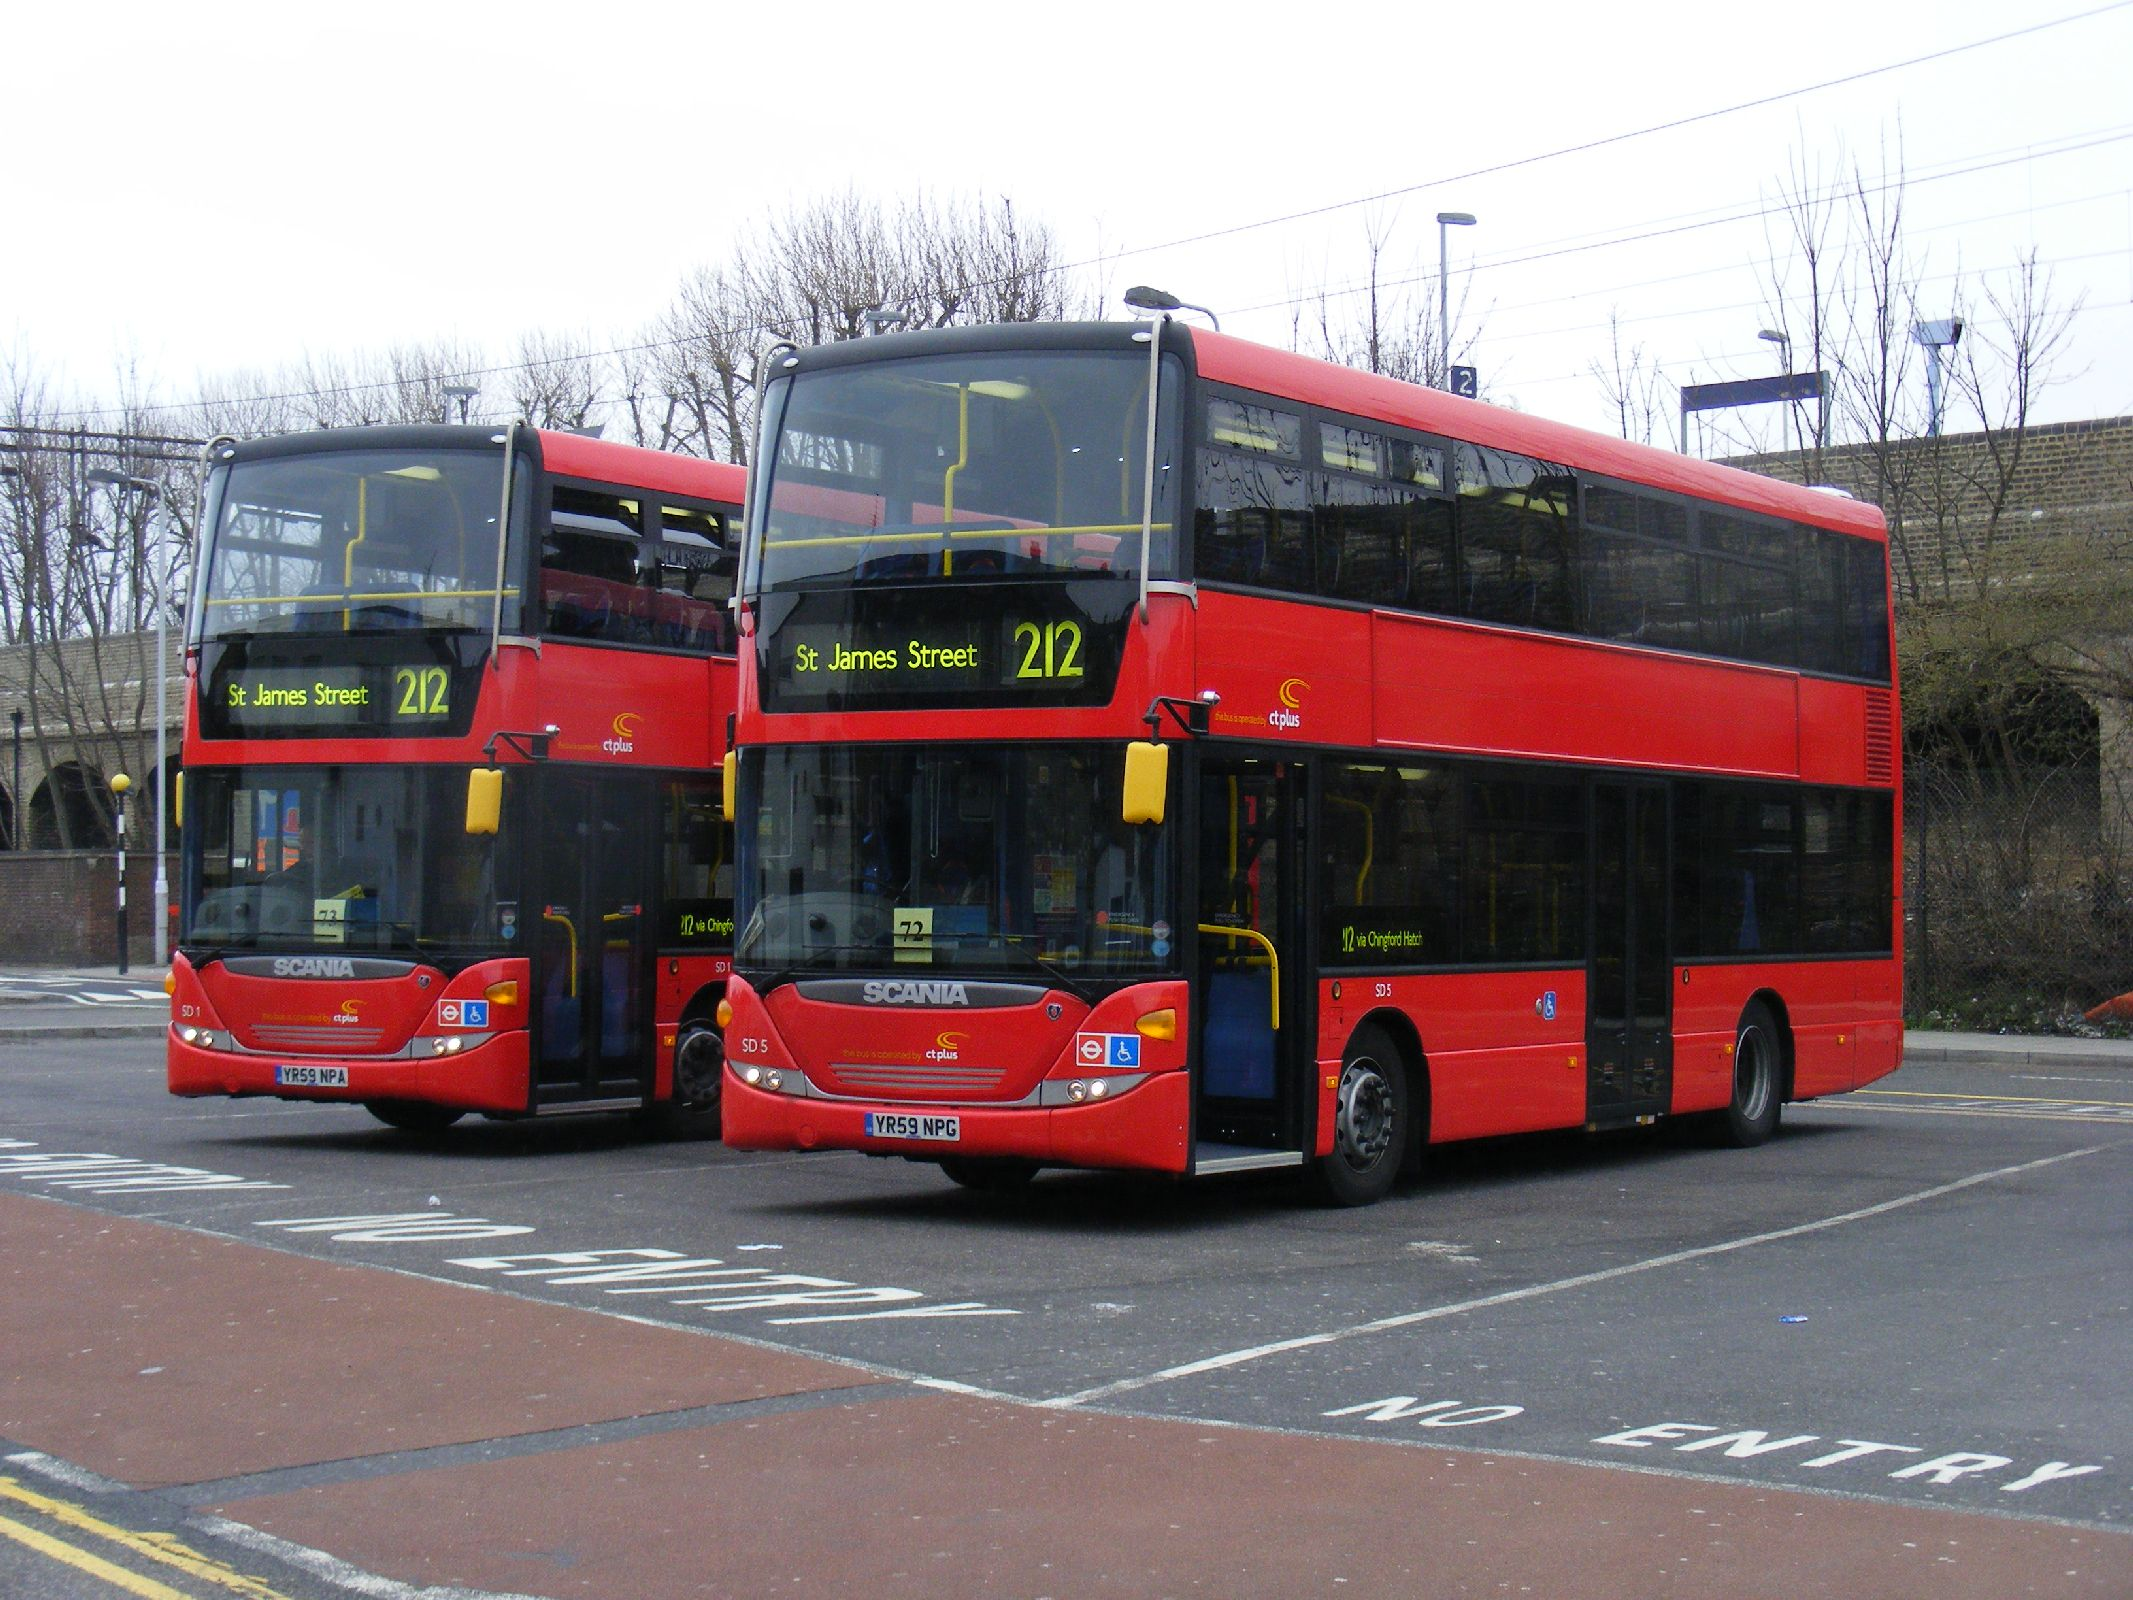 Scania omnicity photo - 3